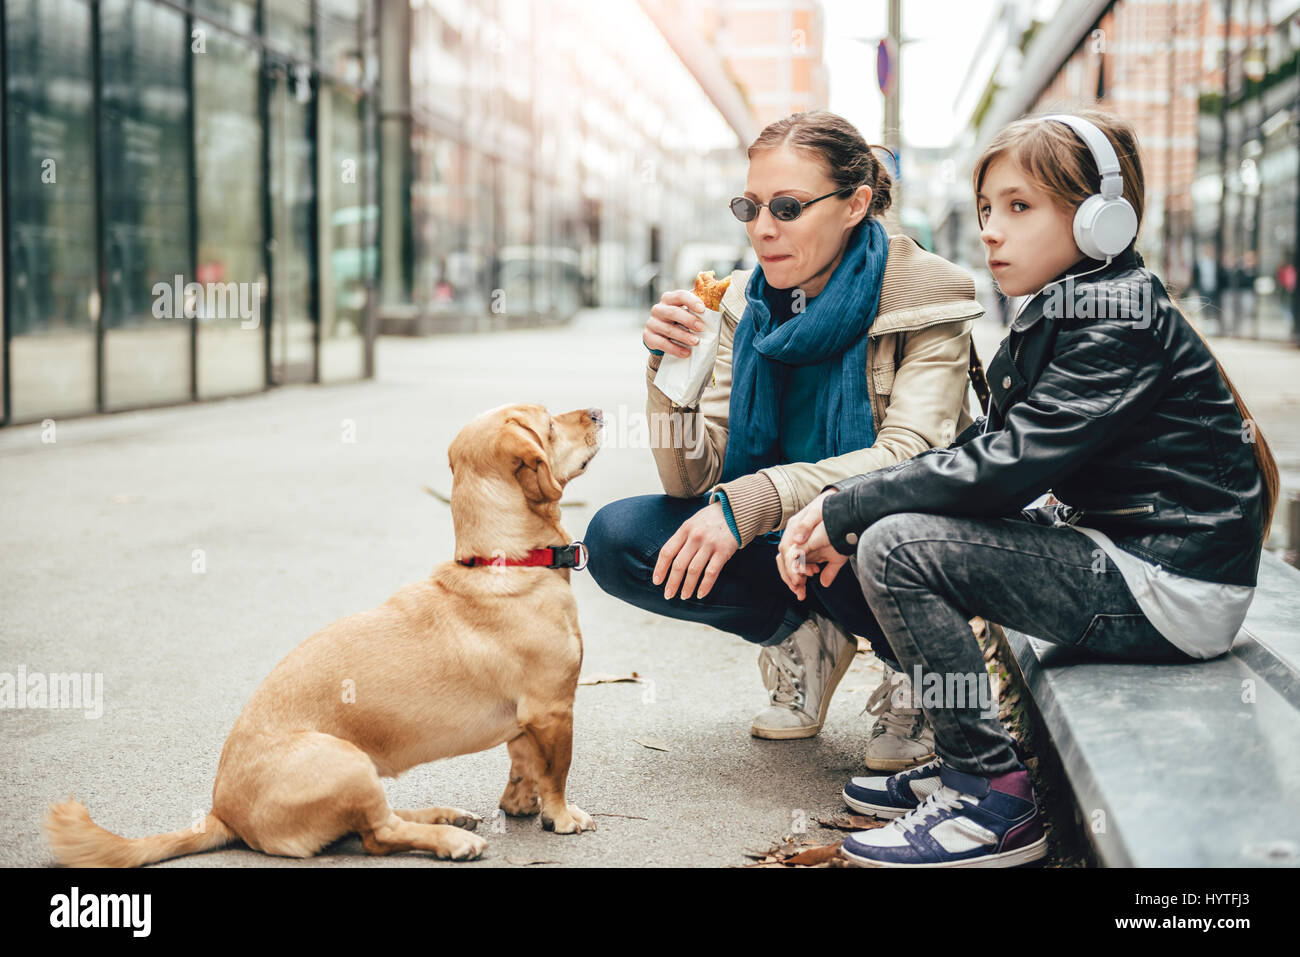 Mother eating sandwich and looking at a dog while daughter listening to music on the street - Stock Image